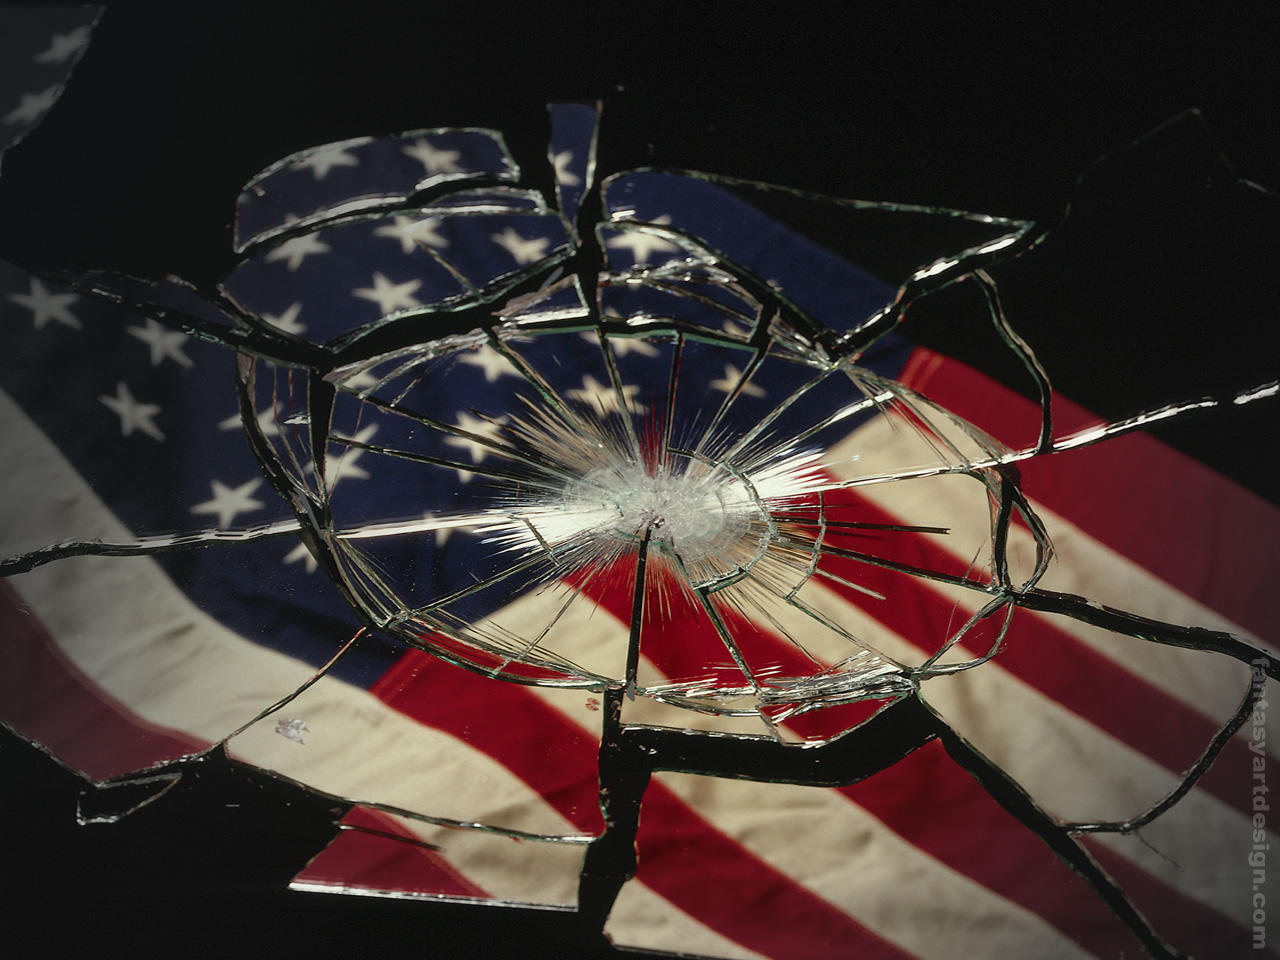 http://fantasyartdesign.com/free-wallpapers/imgs/new/american-flag-glass.jpg